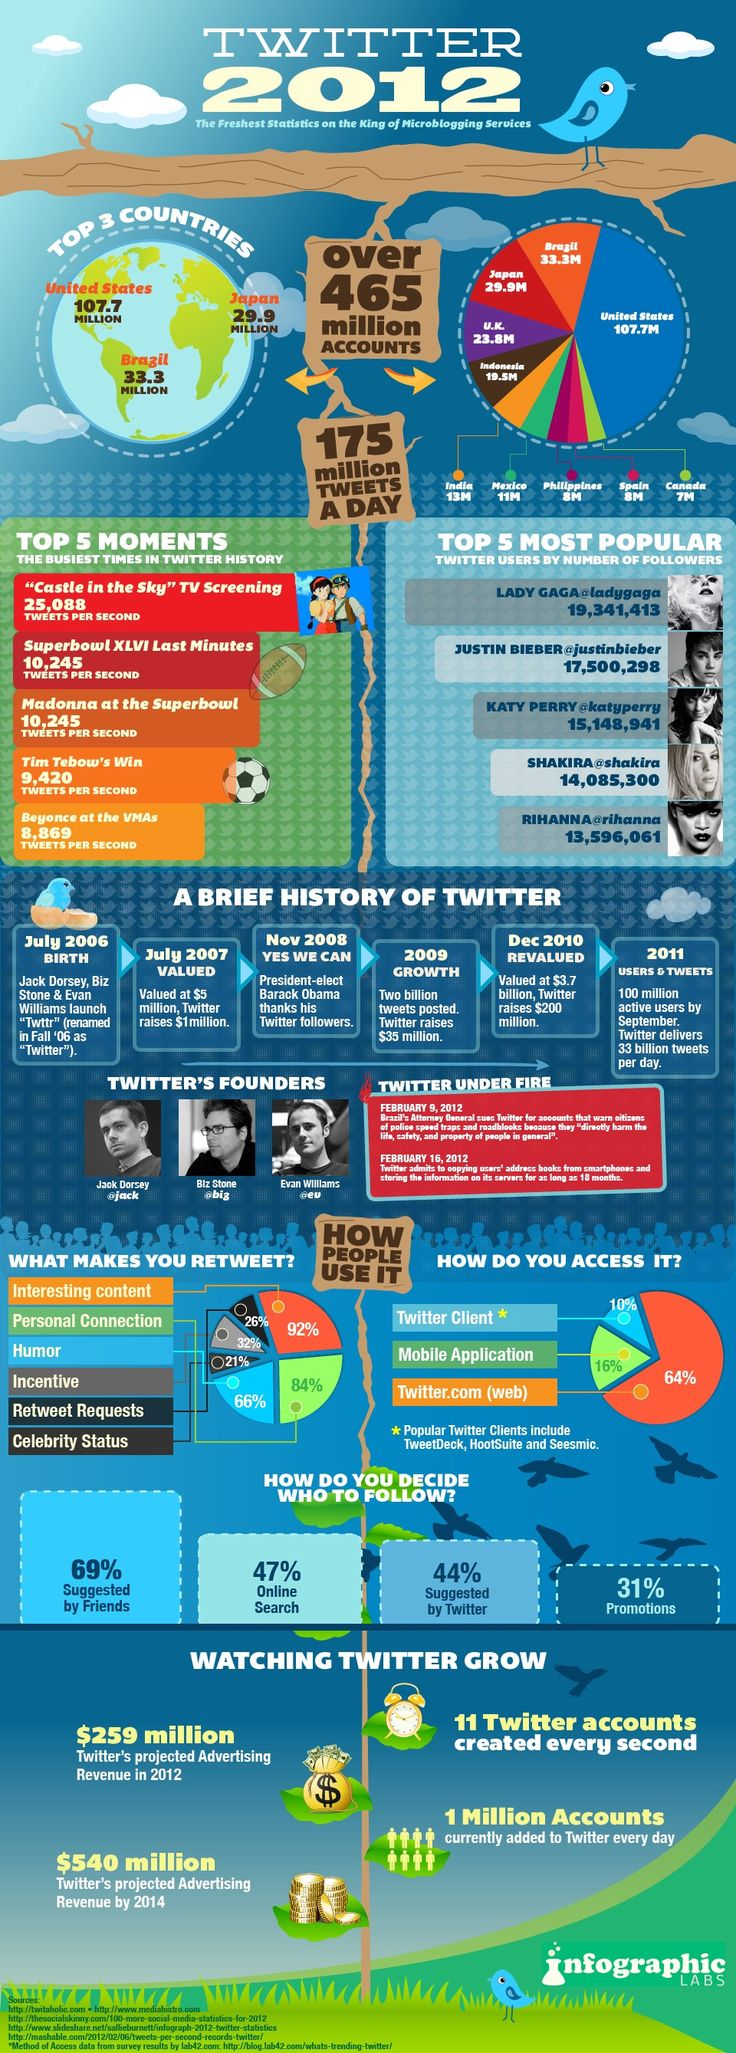 How Big Is Twitter In 2012 #socialmedia #Infographic